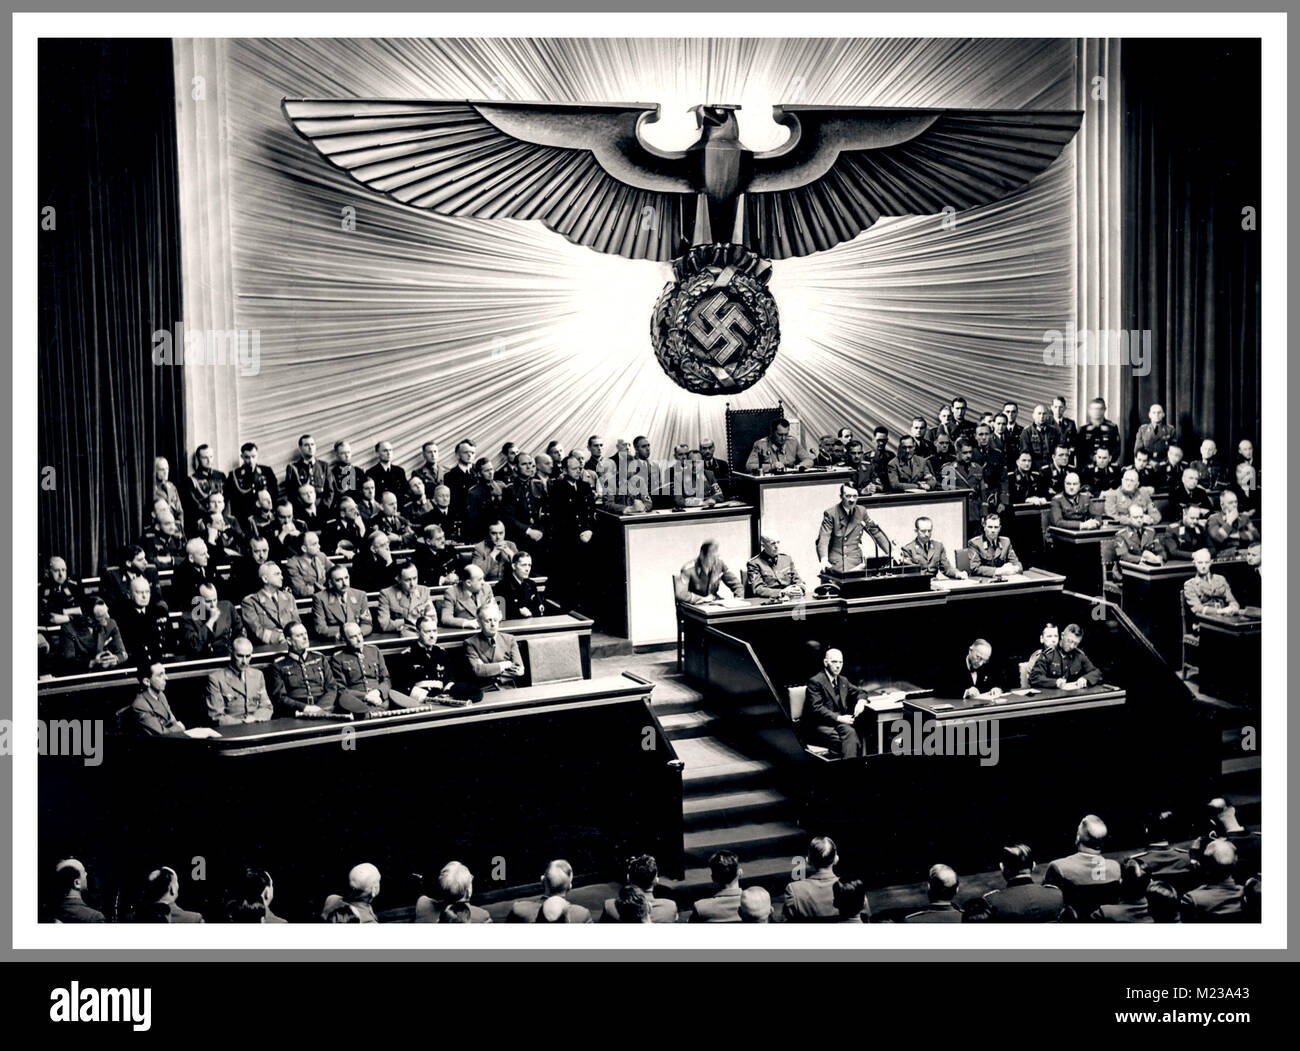 Nazi Propaganda Image Berlin Nazi Party assembly Reichstag Kroll Opera House Berlin Germany Adolf Hitler declares - Stock Image